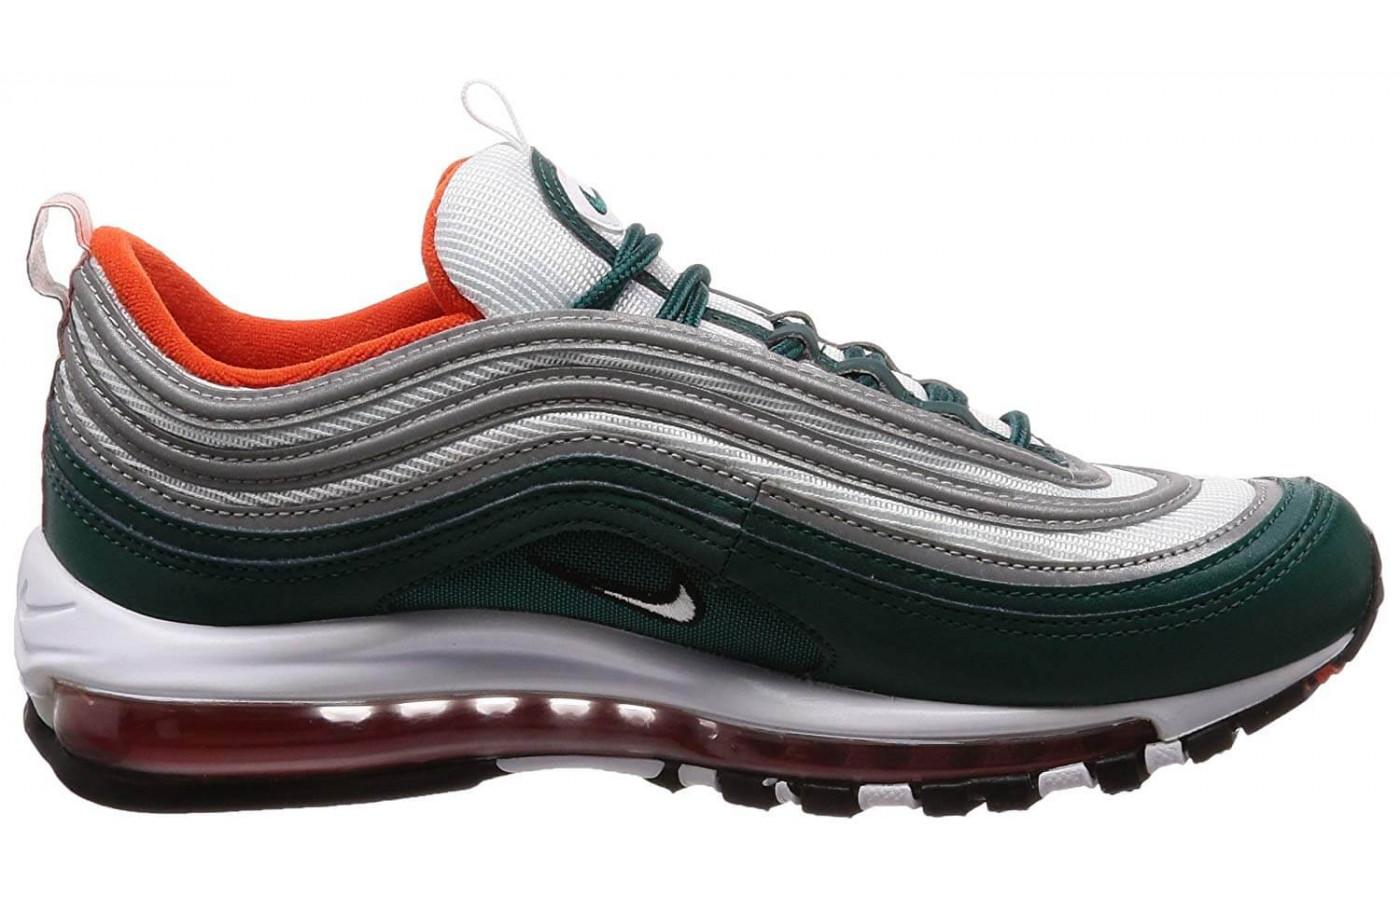 The Air Max 97 features Air Max cushioning throughout the length of the foot